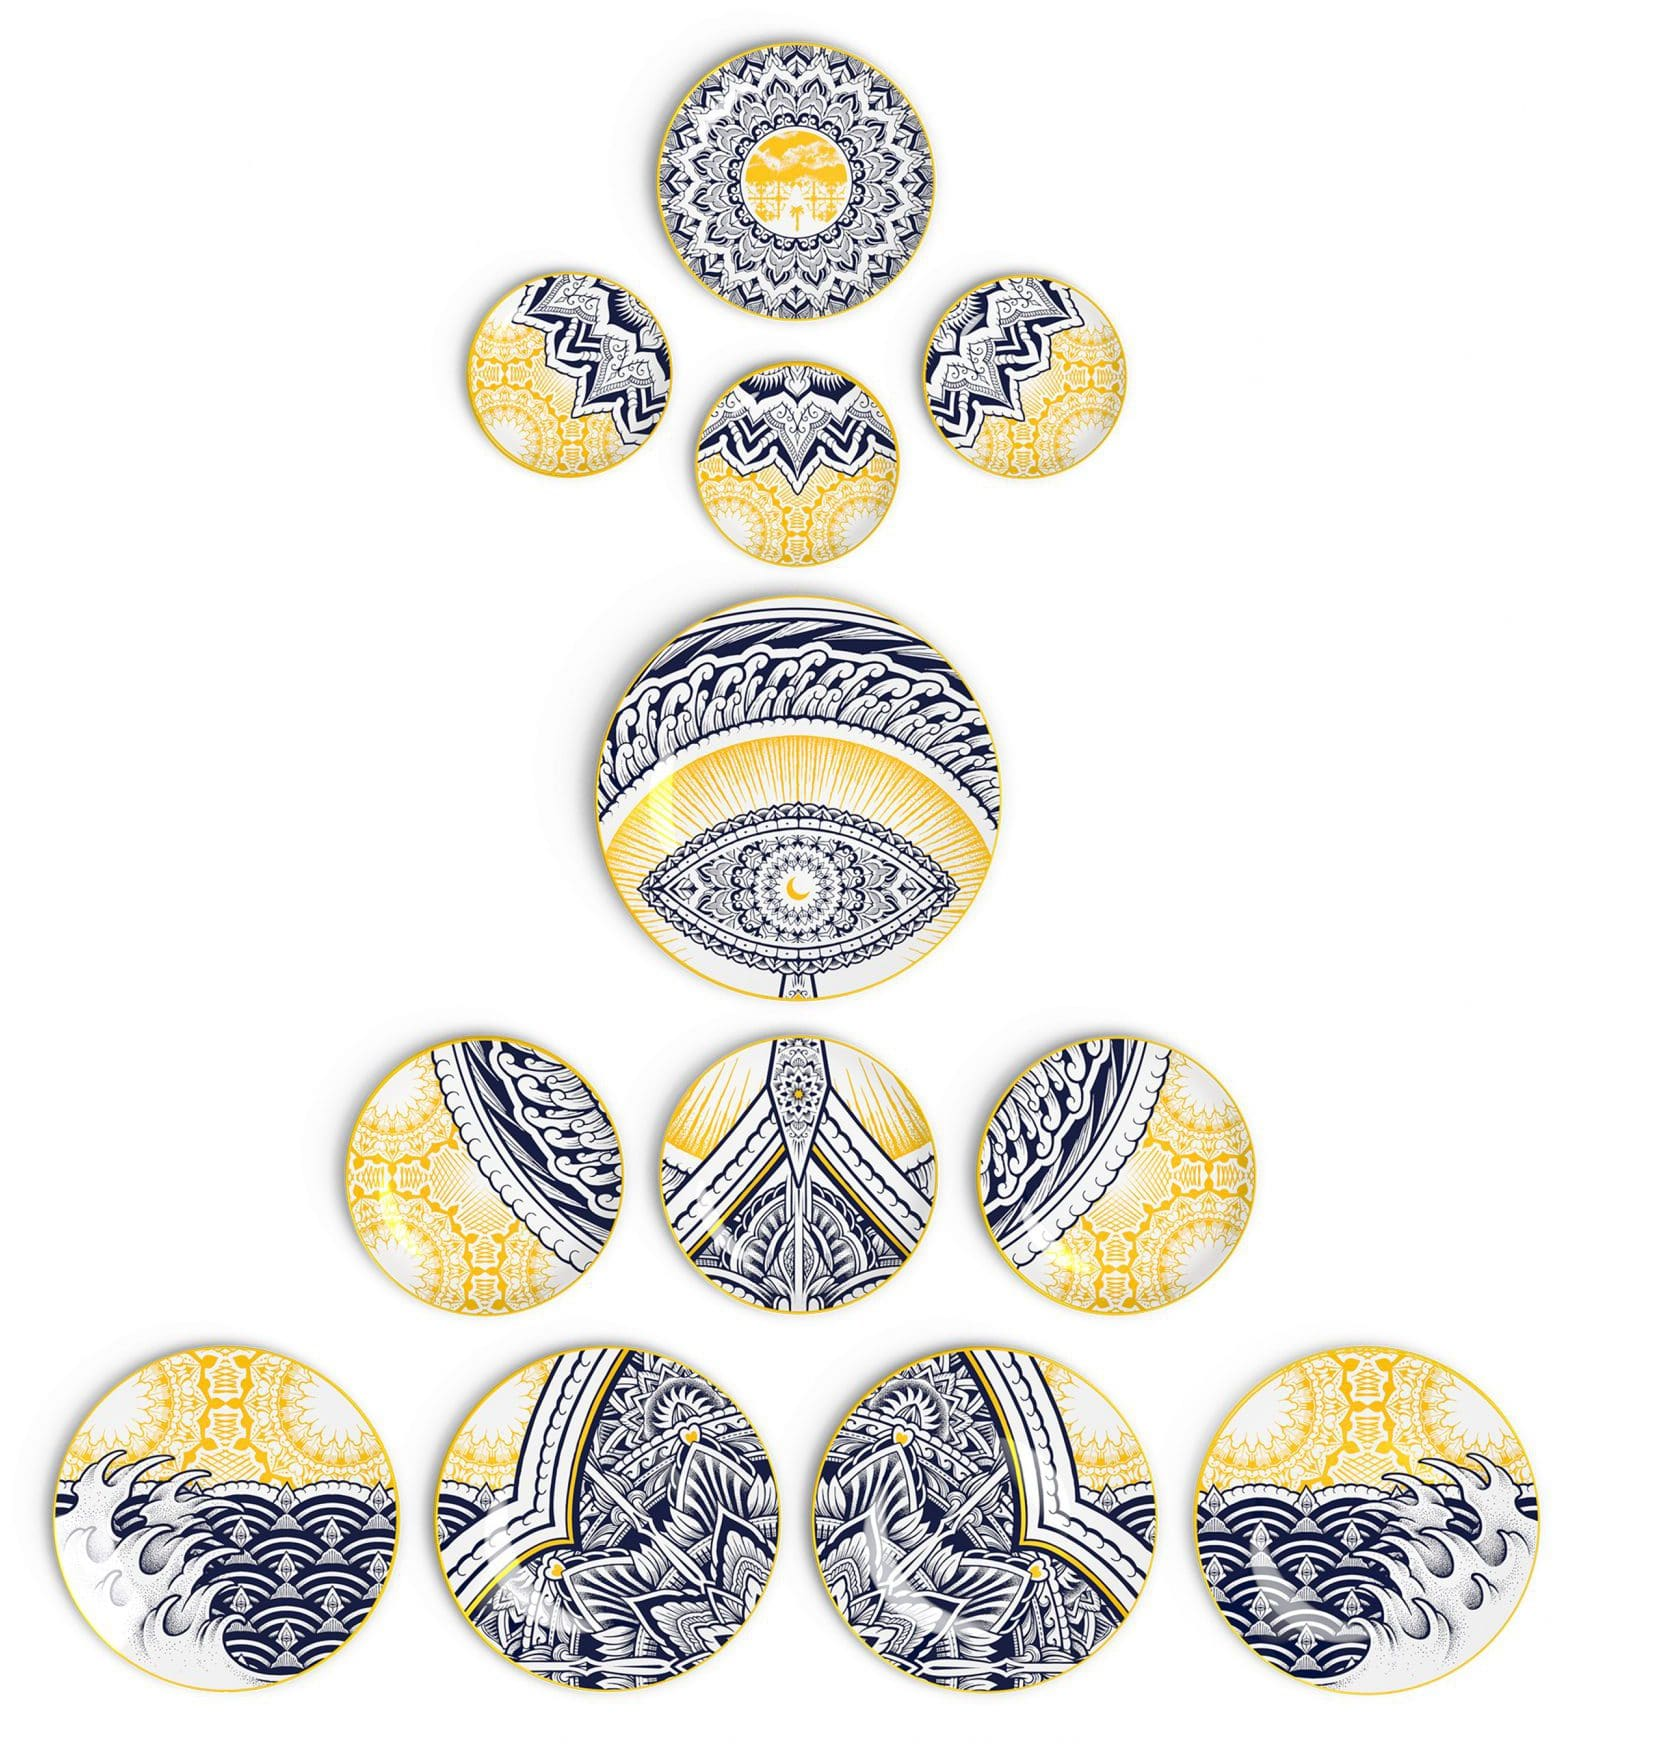 The Genesis Wall Plates by Jekyll Non Sans Raison porcelaine Limoges